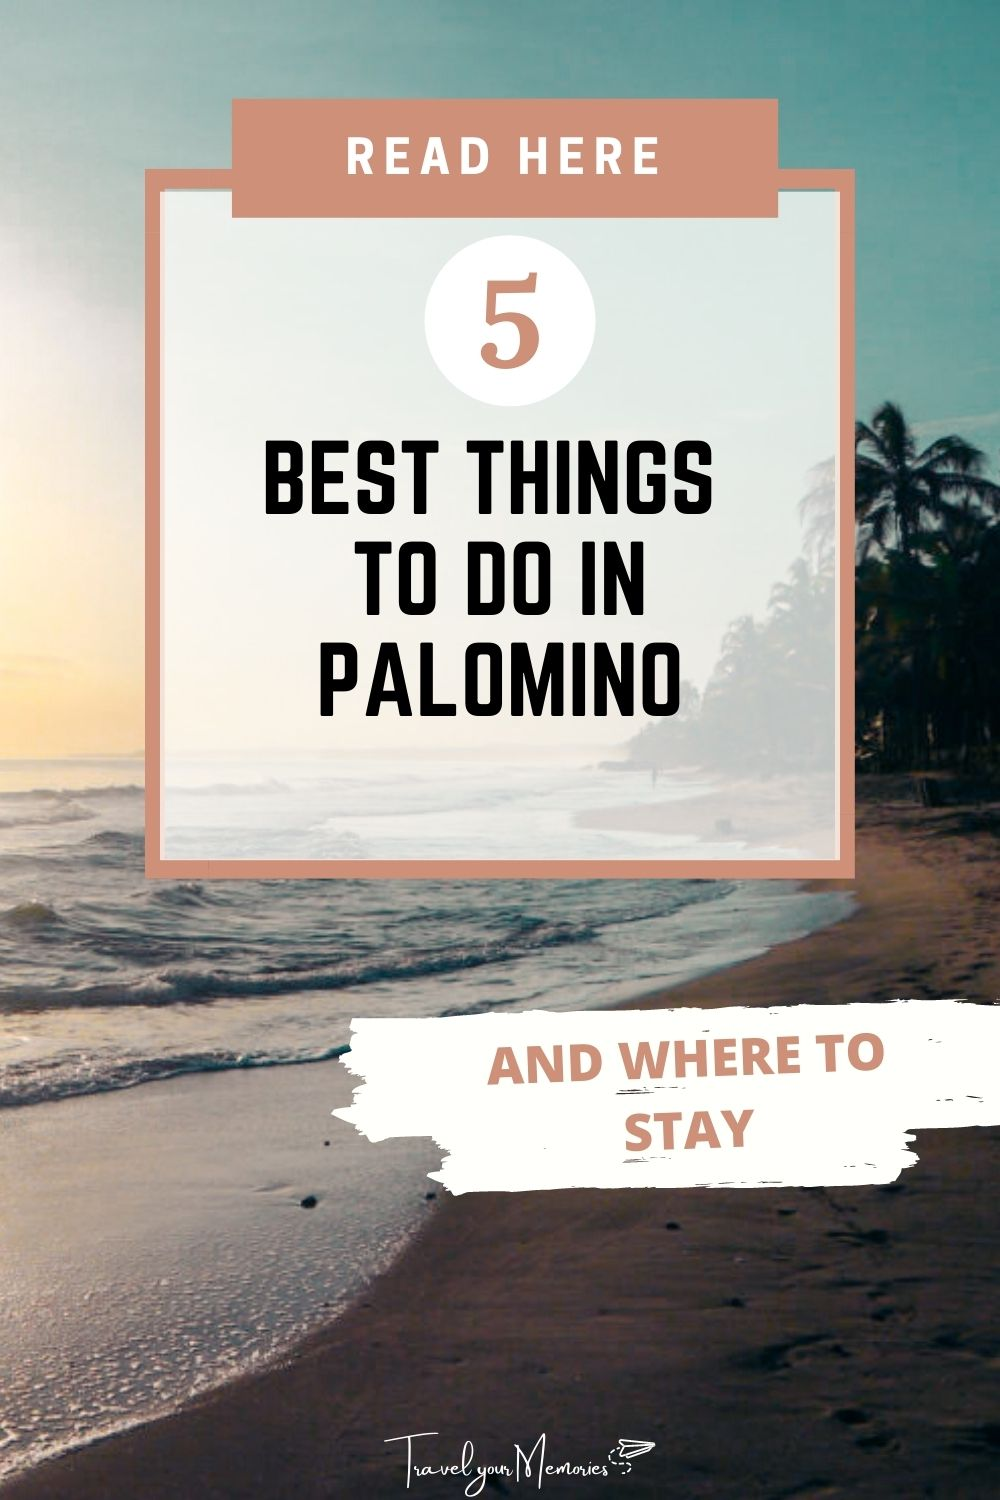 5 awesome tips for Palomino Colombia